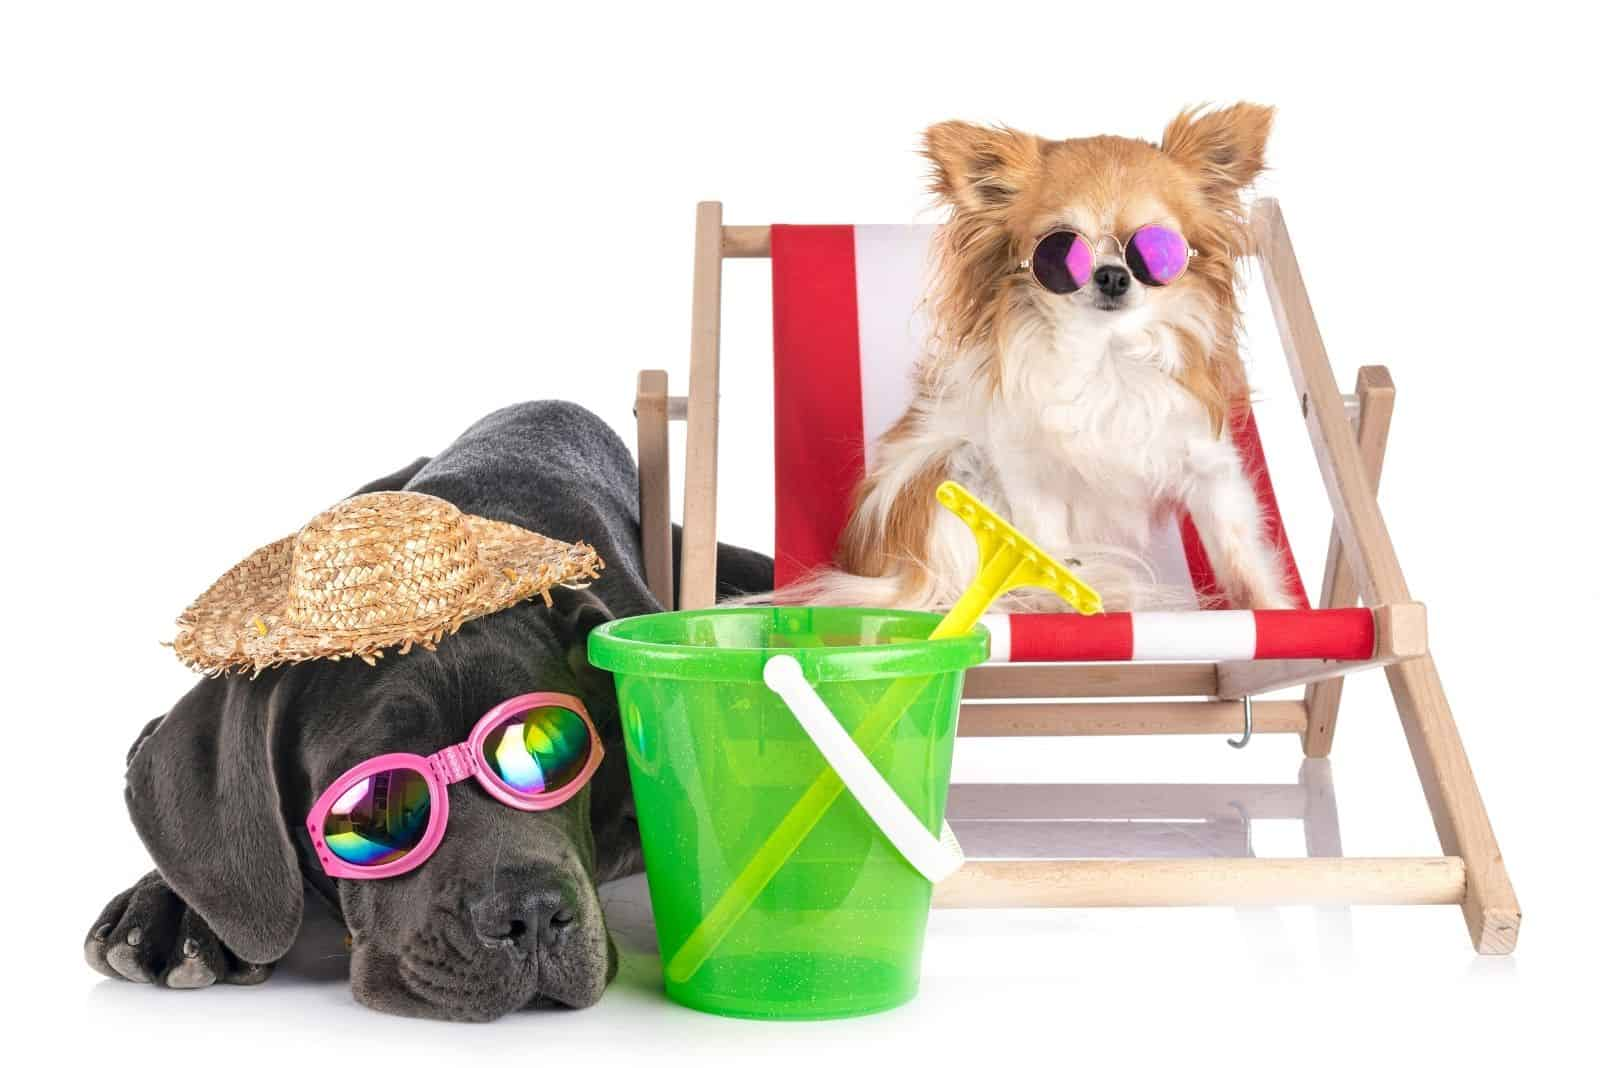 puppy great dane with a chihuahua adorned with sunglasses depicting beach outdoor on white background